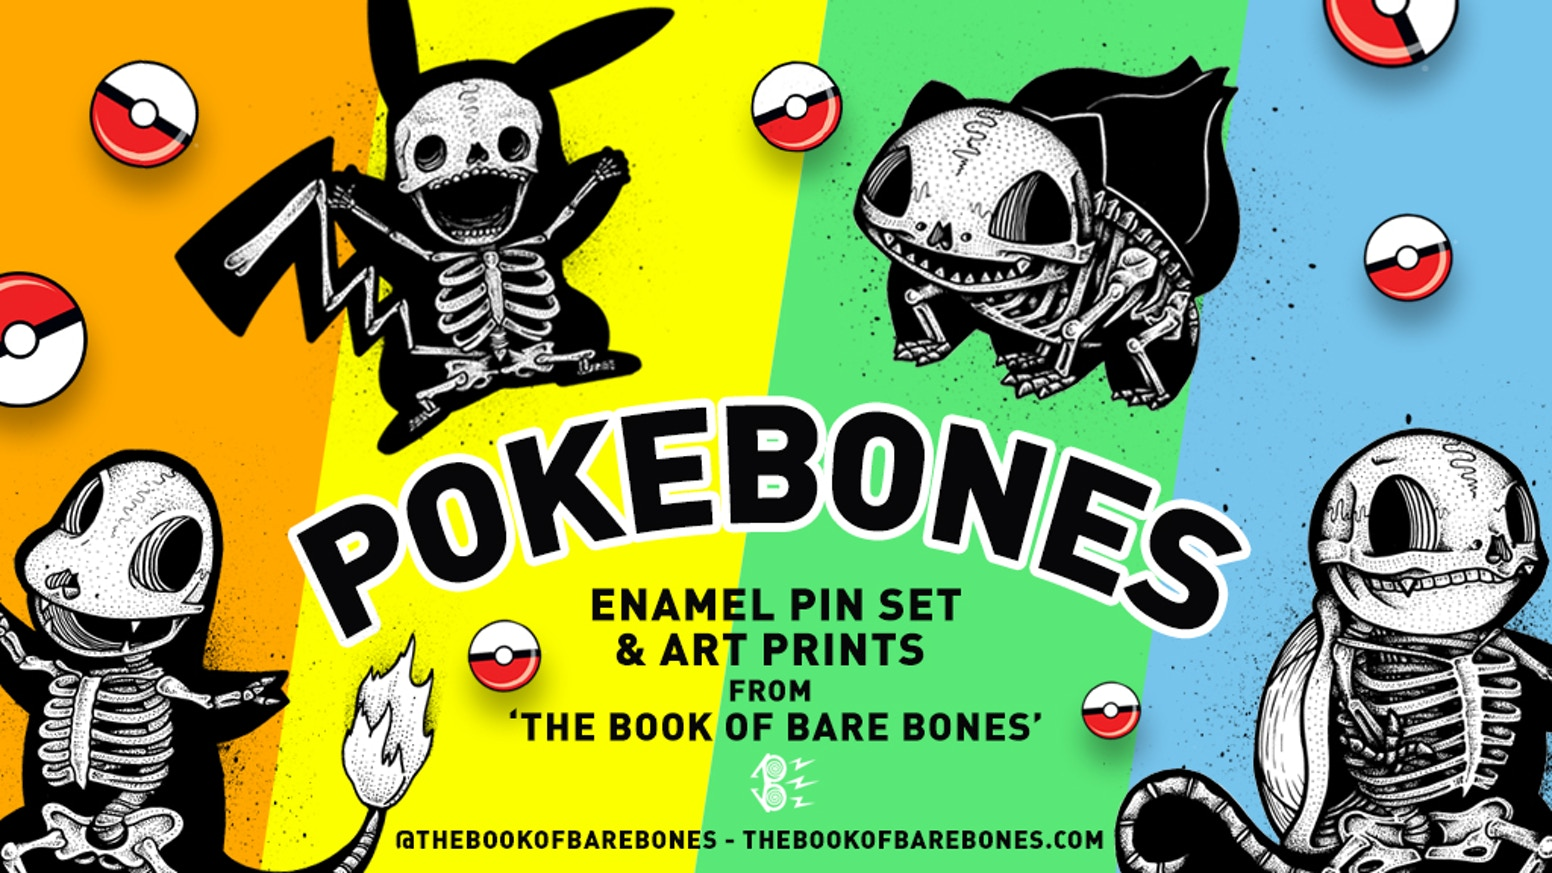 POKEBONES! is the top crowdfunding project launched today. POKEBONES! raised over $1899 from 89 backers. Other top projects include Striktly Summer - Salsa in Rotterdam, Filming God's Country, The Community Book...